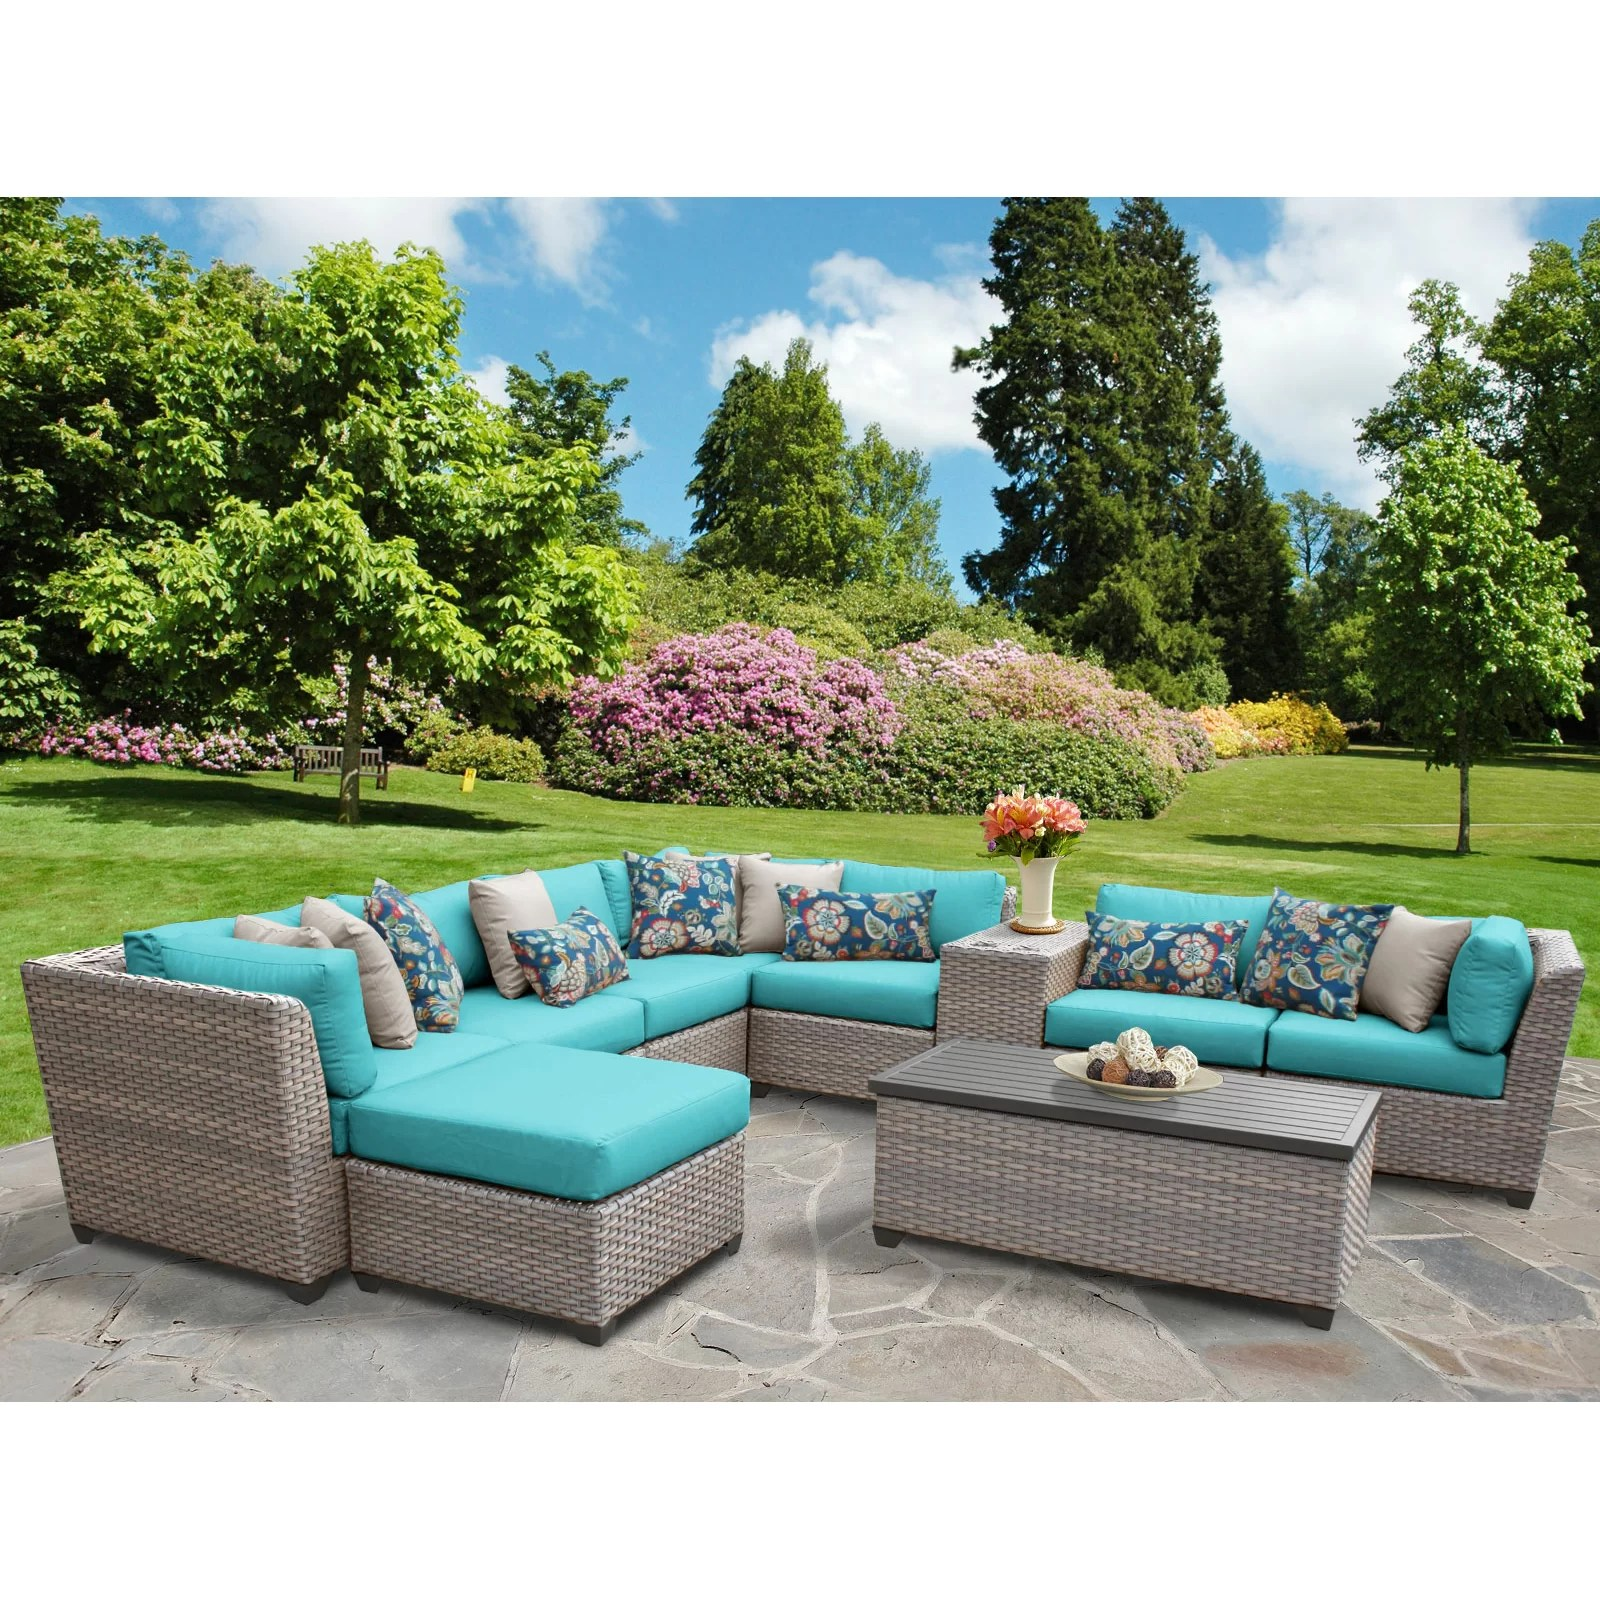 Florence 8 Piece Rattan Sofa Set With Cushions Tk Classics Florence Outdoor Wicker Patio 10 Piece Deep